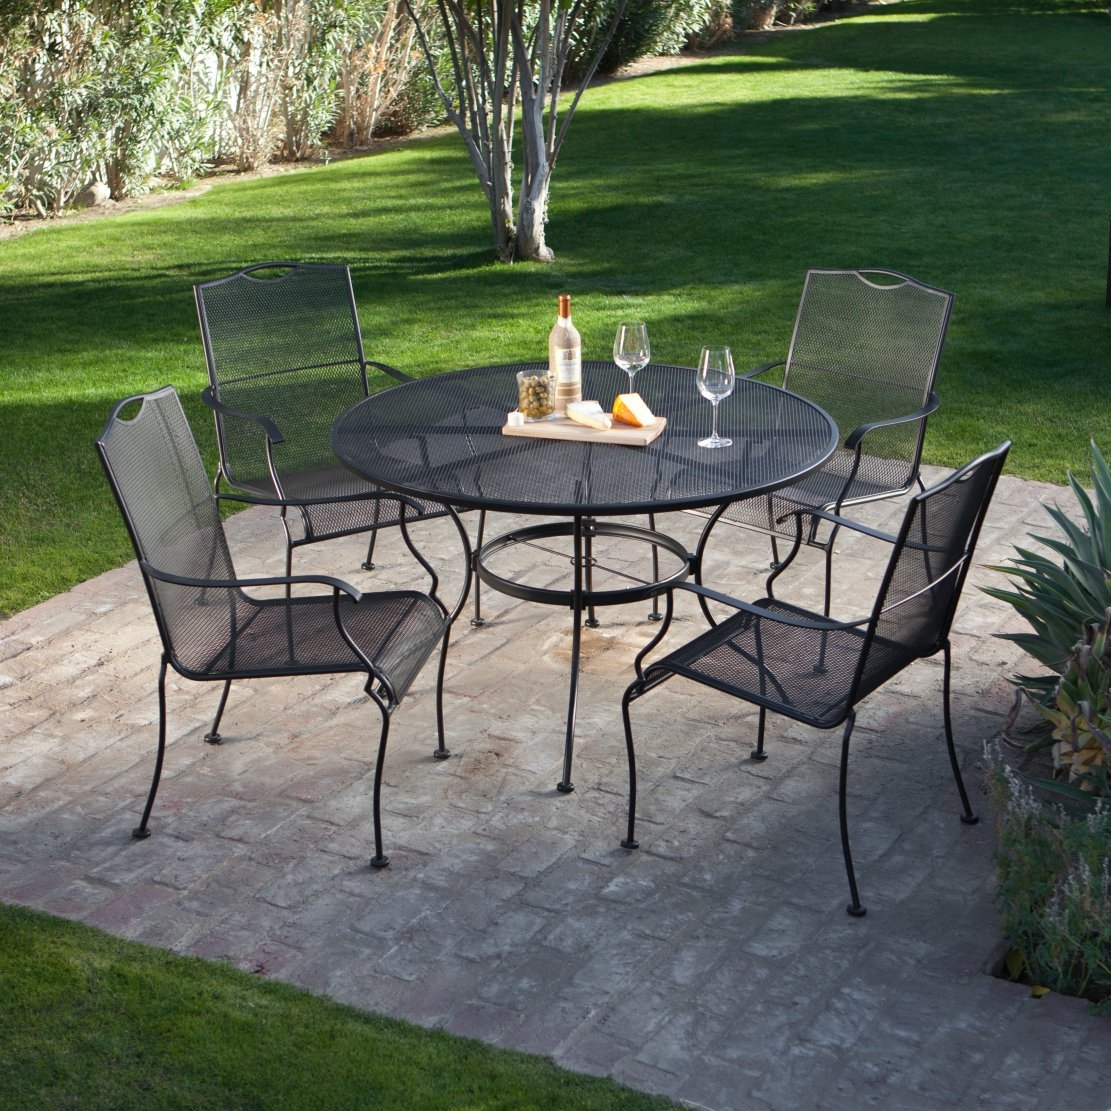 5-piece wrought iron patio furniture dining set - seats 4 DRSYCDK